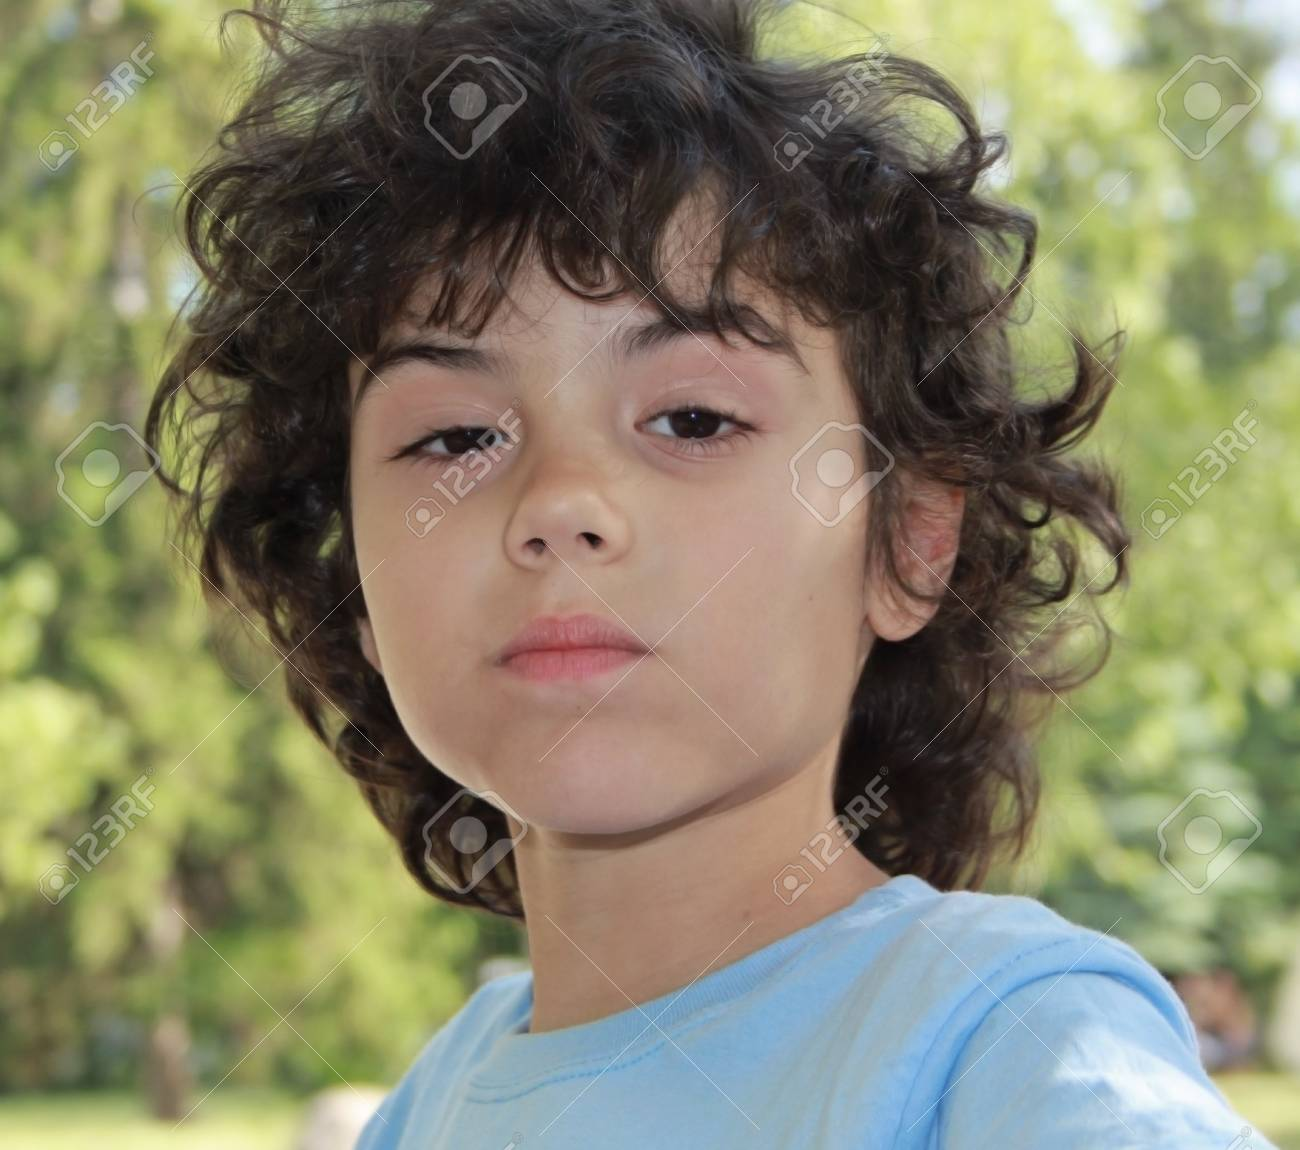 Cute Little Boy With Curly Hair Is Posing In Front Of Camera Stock Photo Picture And Royalty Free Image Image 20082389